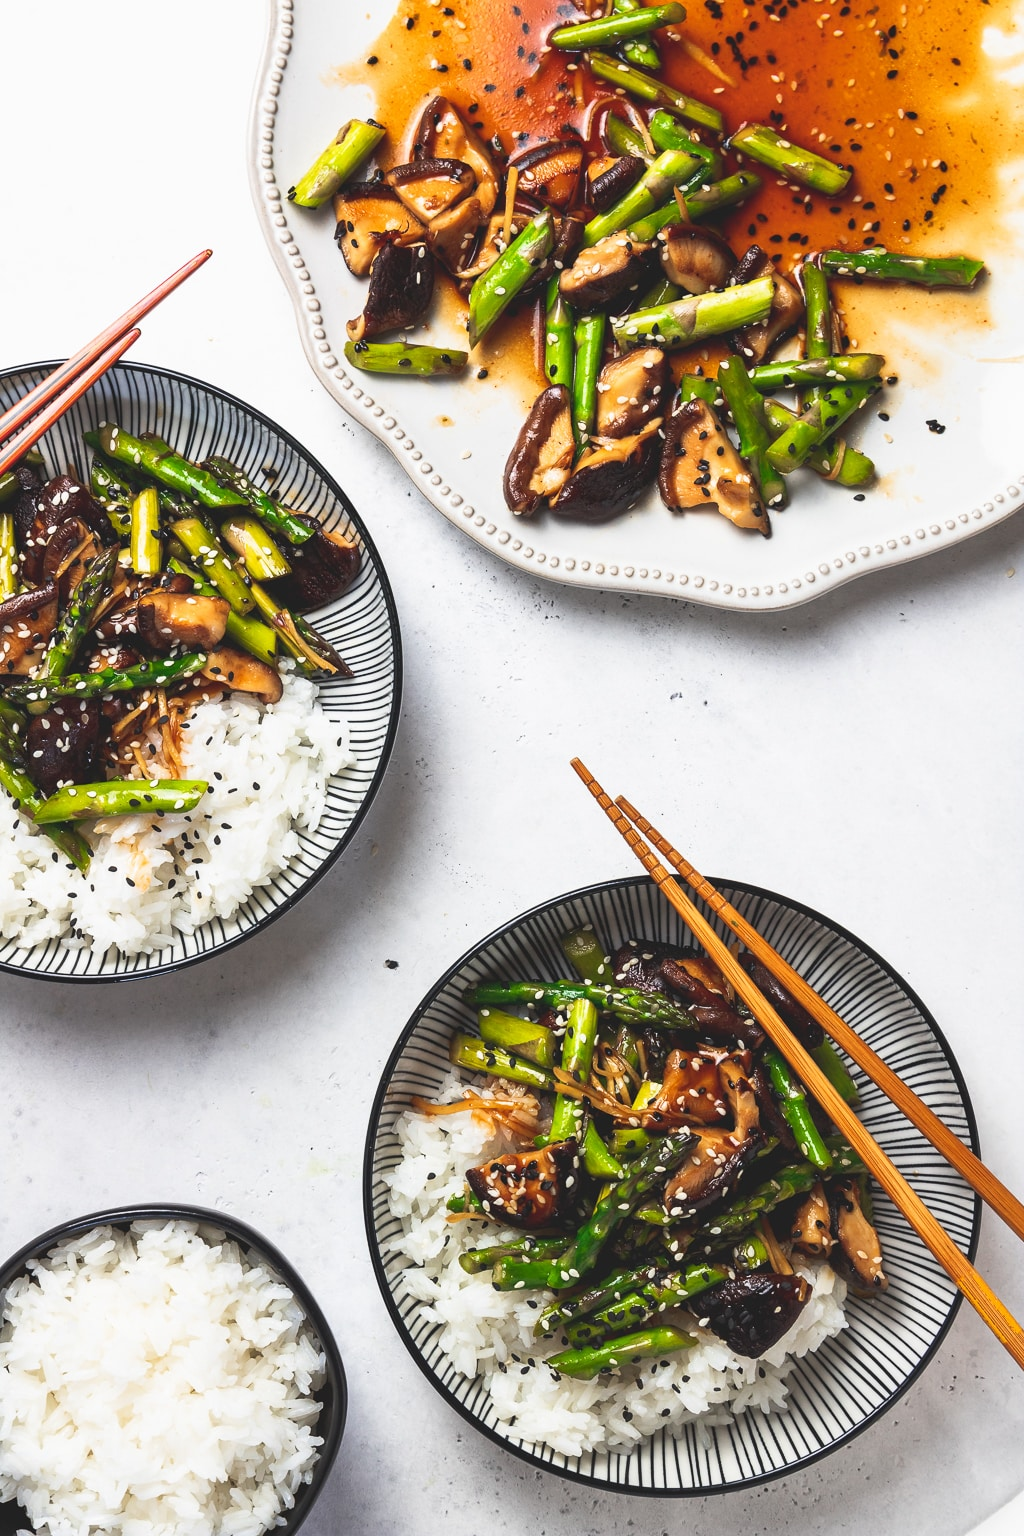 asparagus and mushroom stir fry in bowls and on a plate with white rice and chopsticks